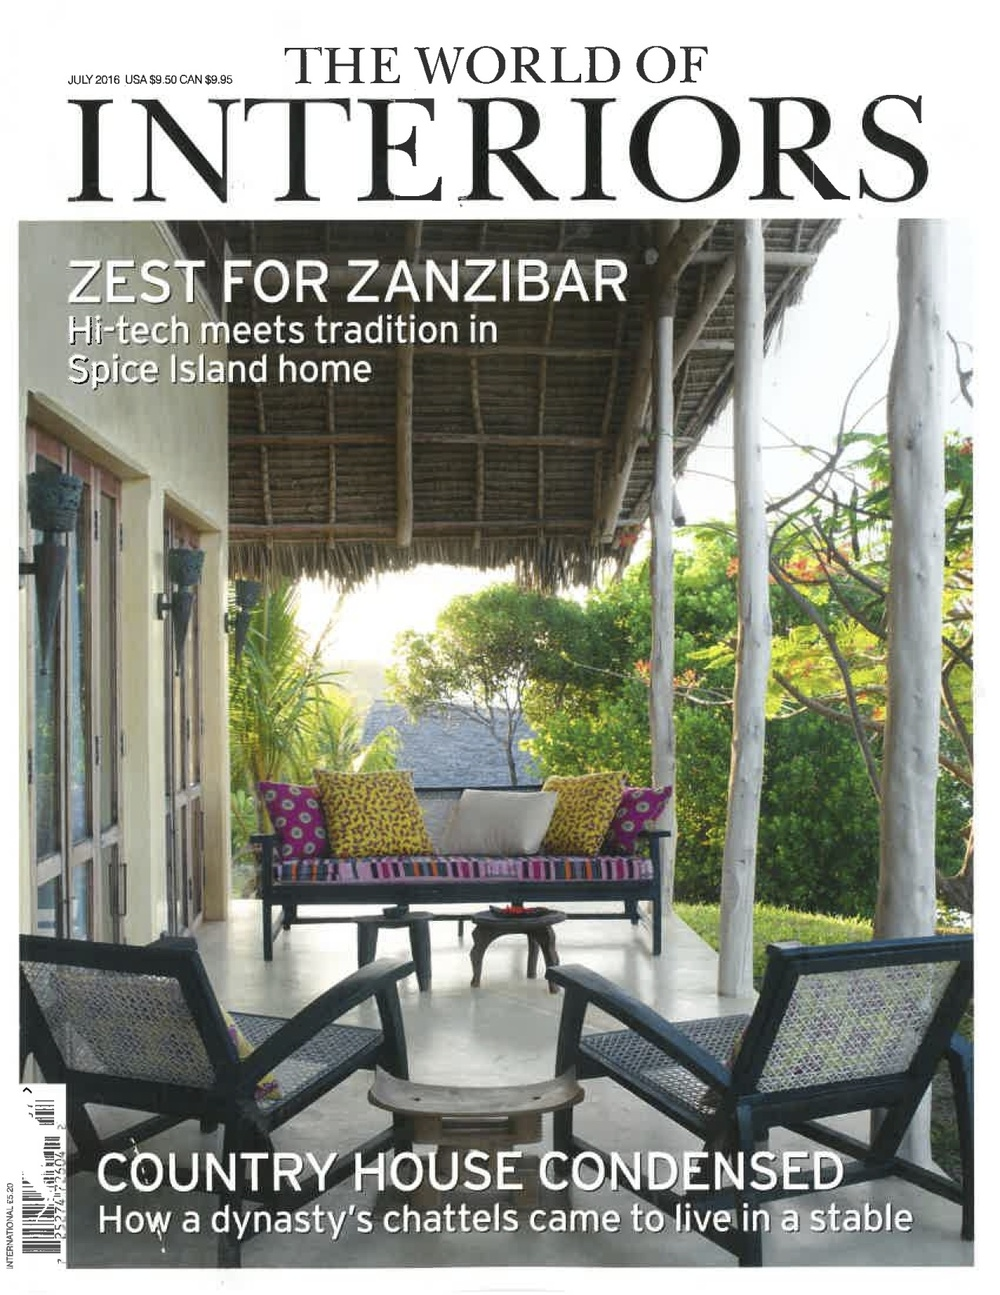 World of Interiors July16' Cover.jpg